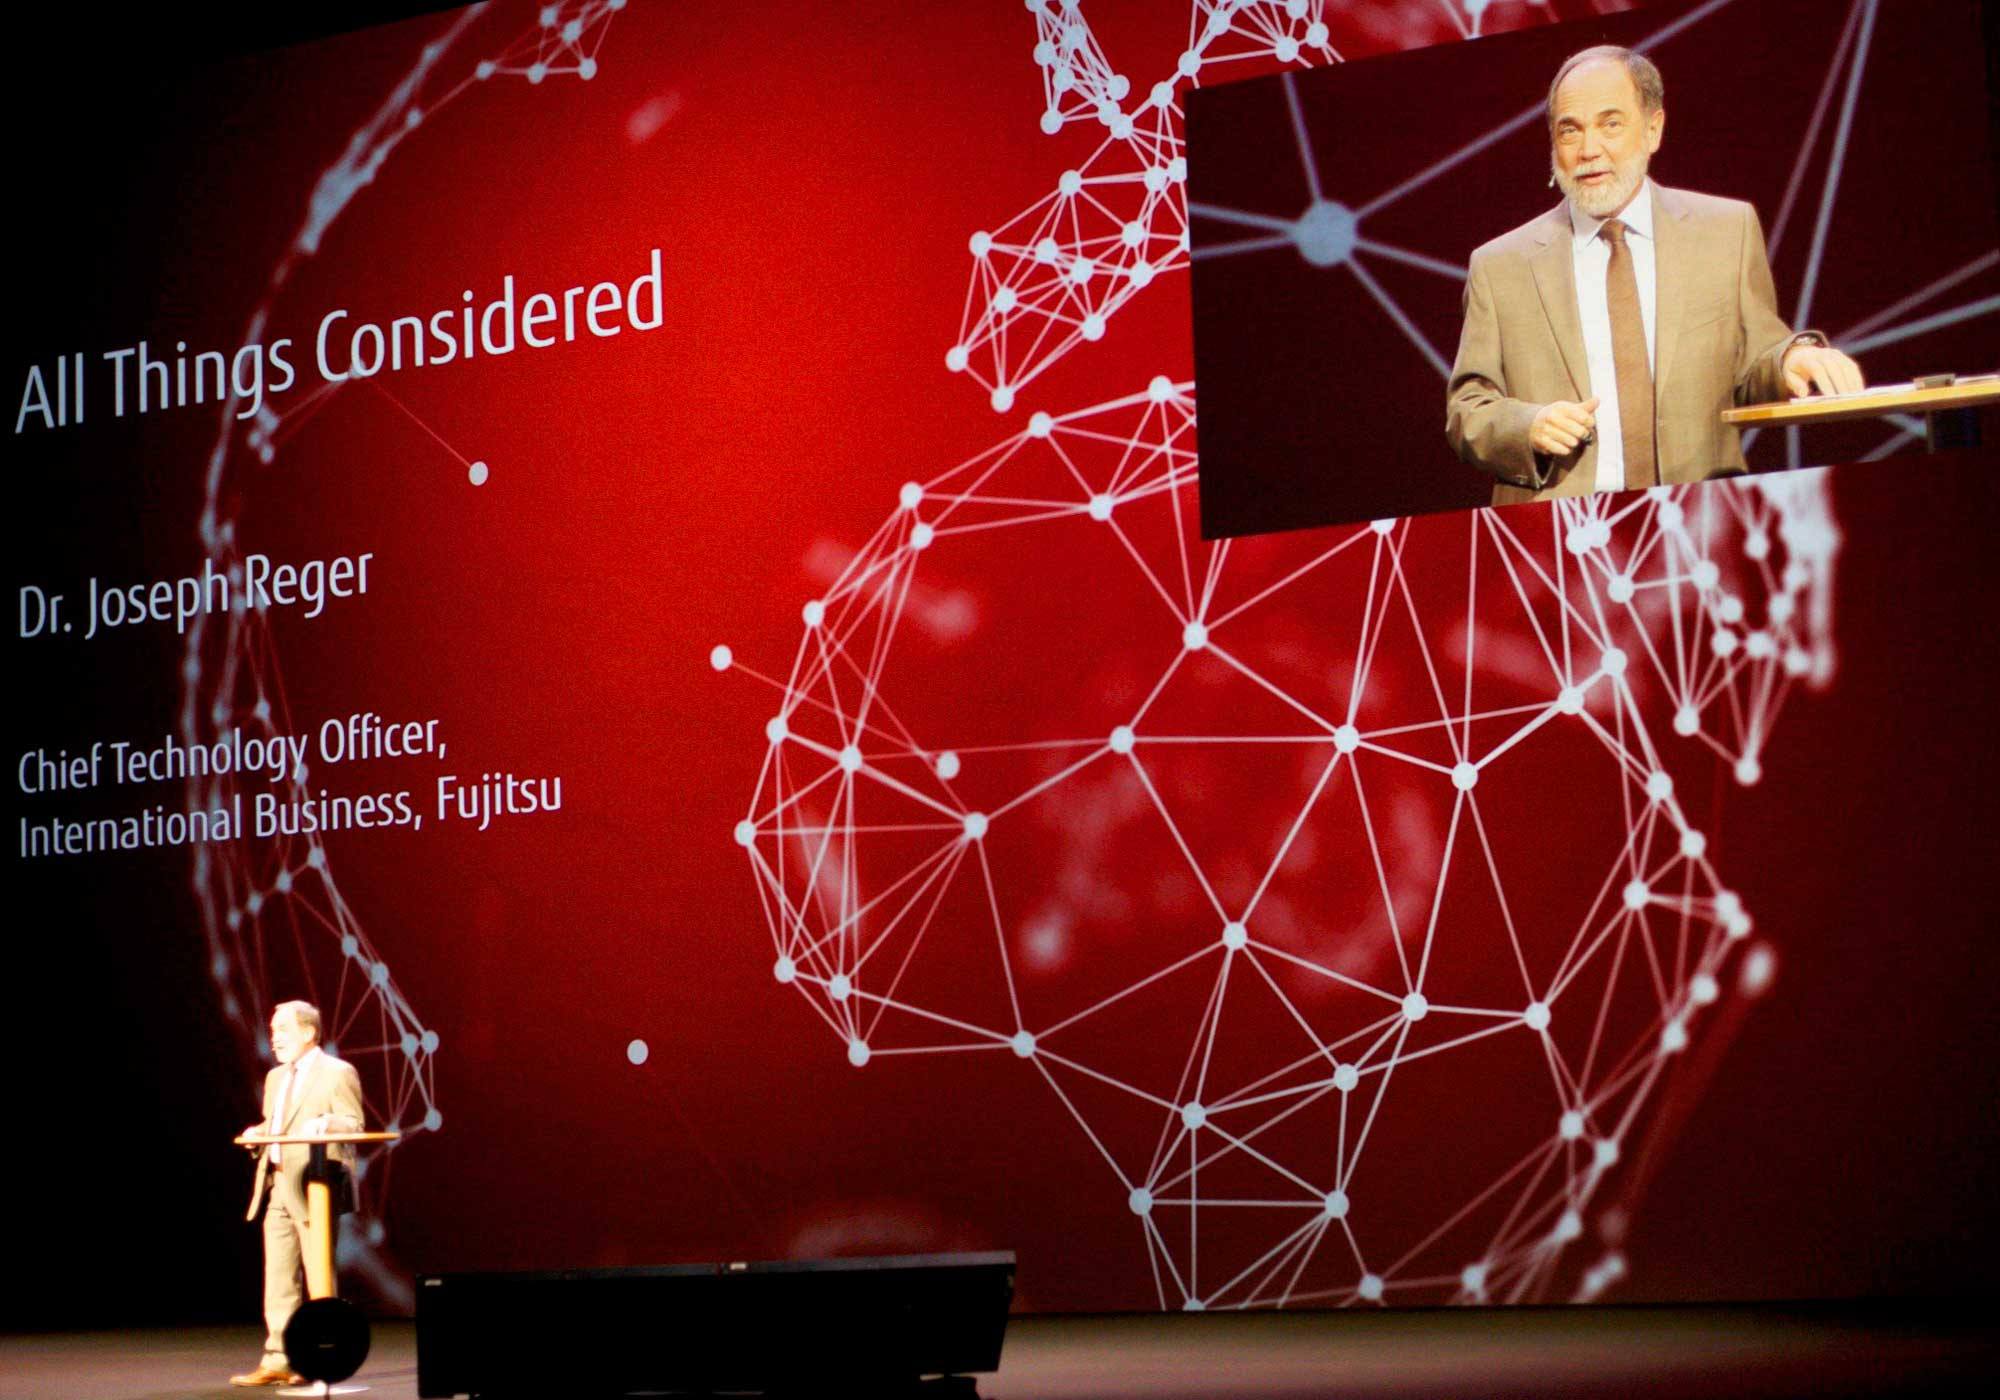 Joseph Reger, Fujitsu Fellow and Chief Technology Officer EMEIA: What's on the CTO's mind?